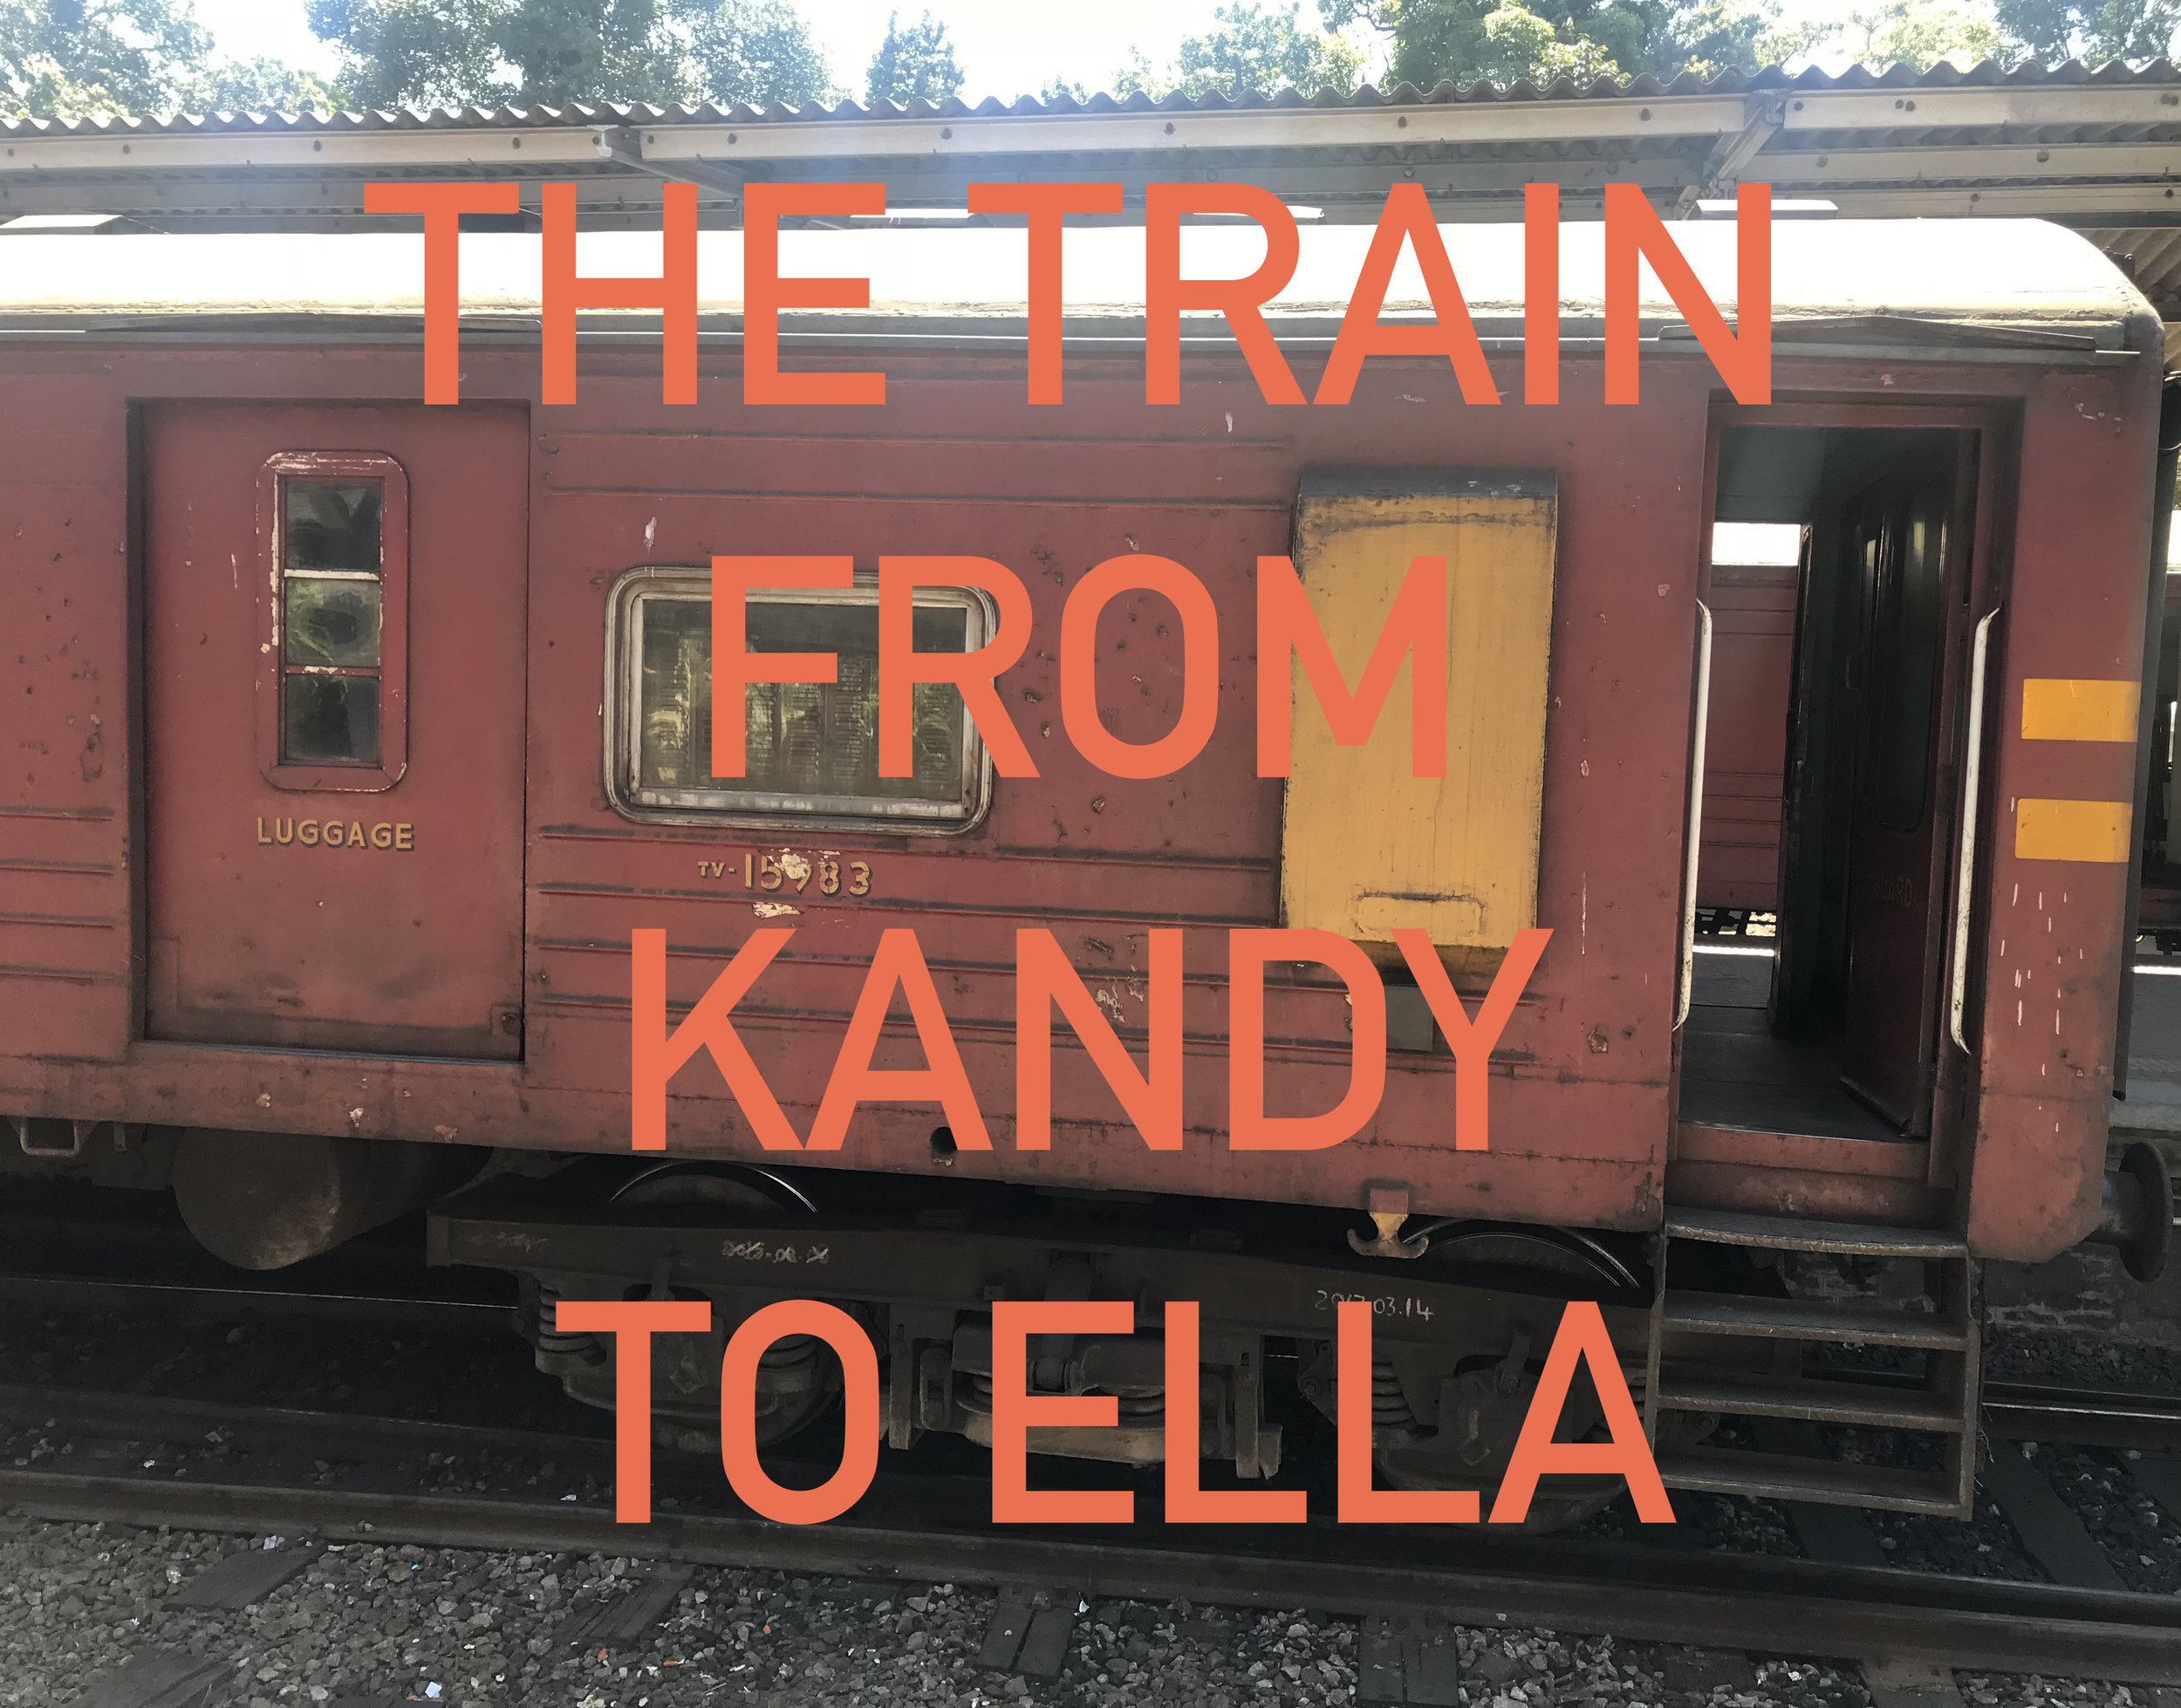 The Train from Kandy to Ella